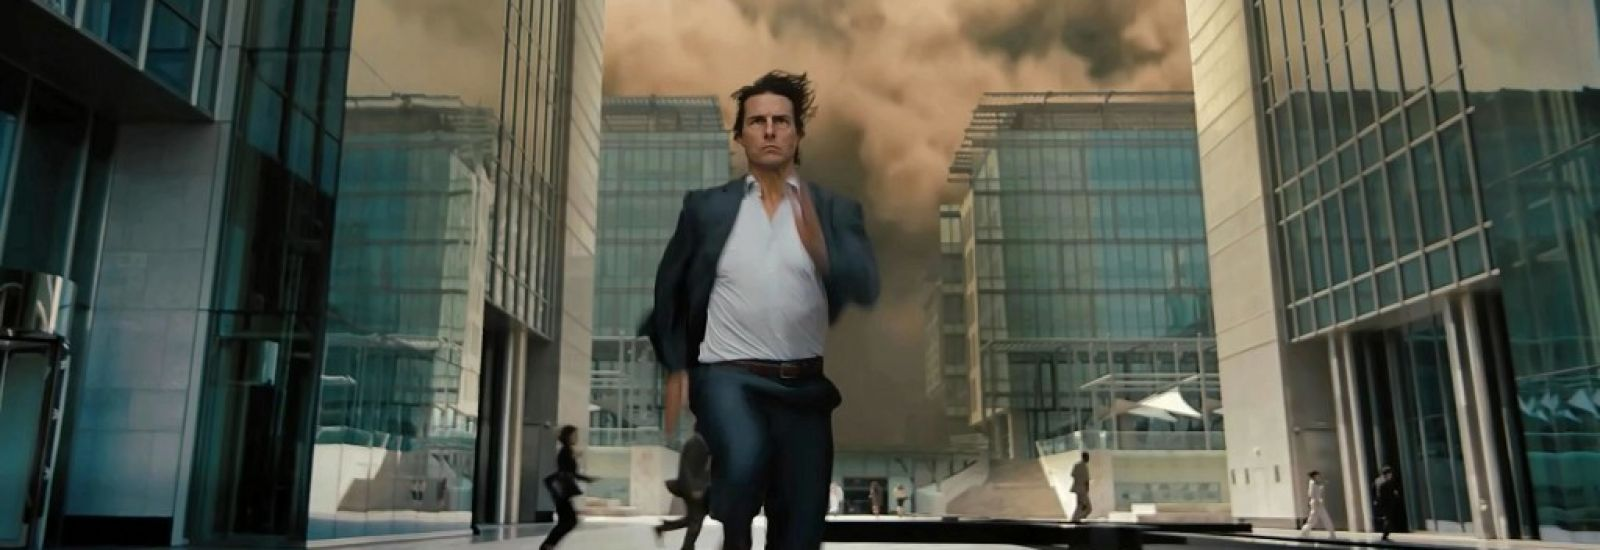 tom-cruise-run